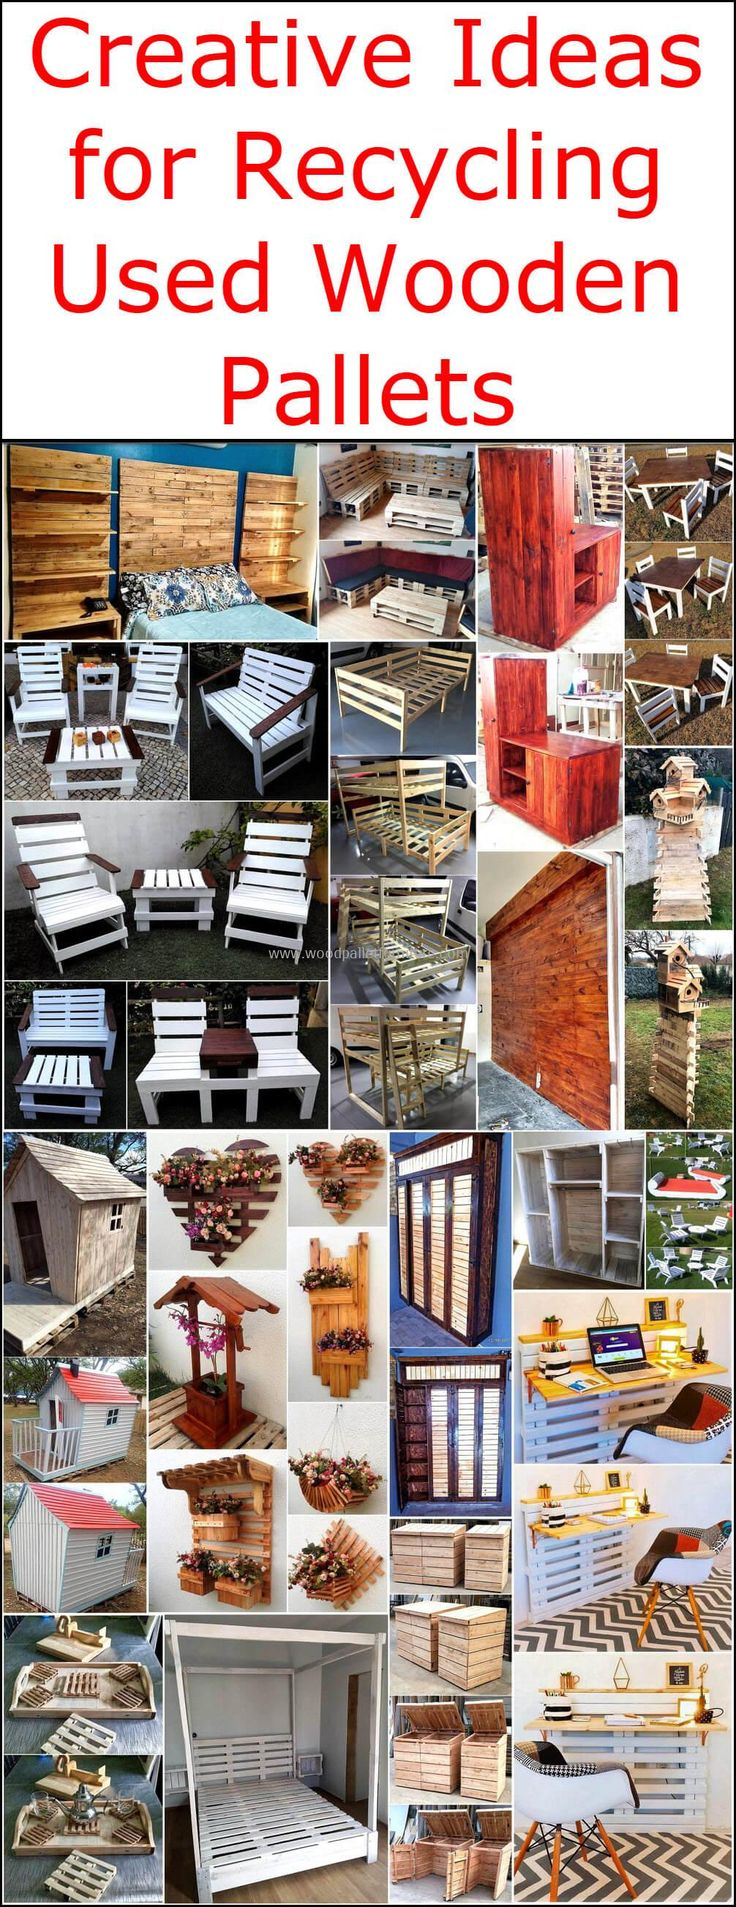 Now simply reshape the wood pallets present at your home or easily available at nearby wooden markets and construct, pallet outdoor furniture set, a beautiful kid's bunk bed, an awesome looking bed headboard and much more. The useless wood pallets provide us full freedom of creativity so modify them to create new wooden products for your home.